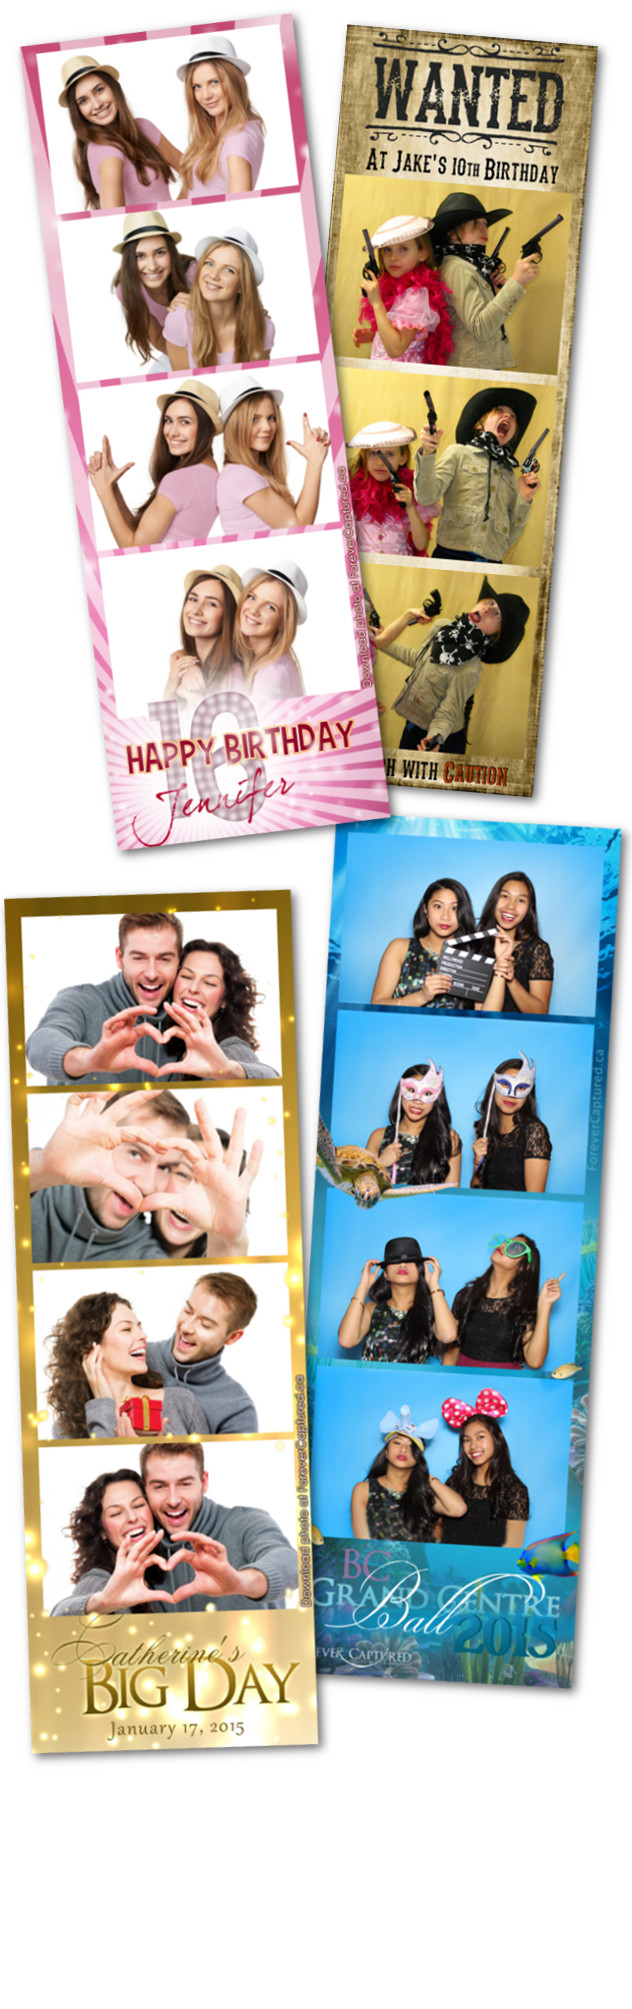 Photobooth rentals in Vancouver, BC for weddings, events, and parties.